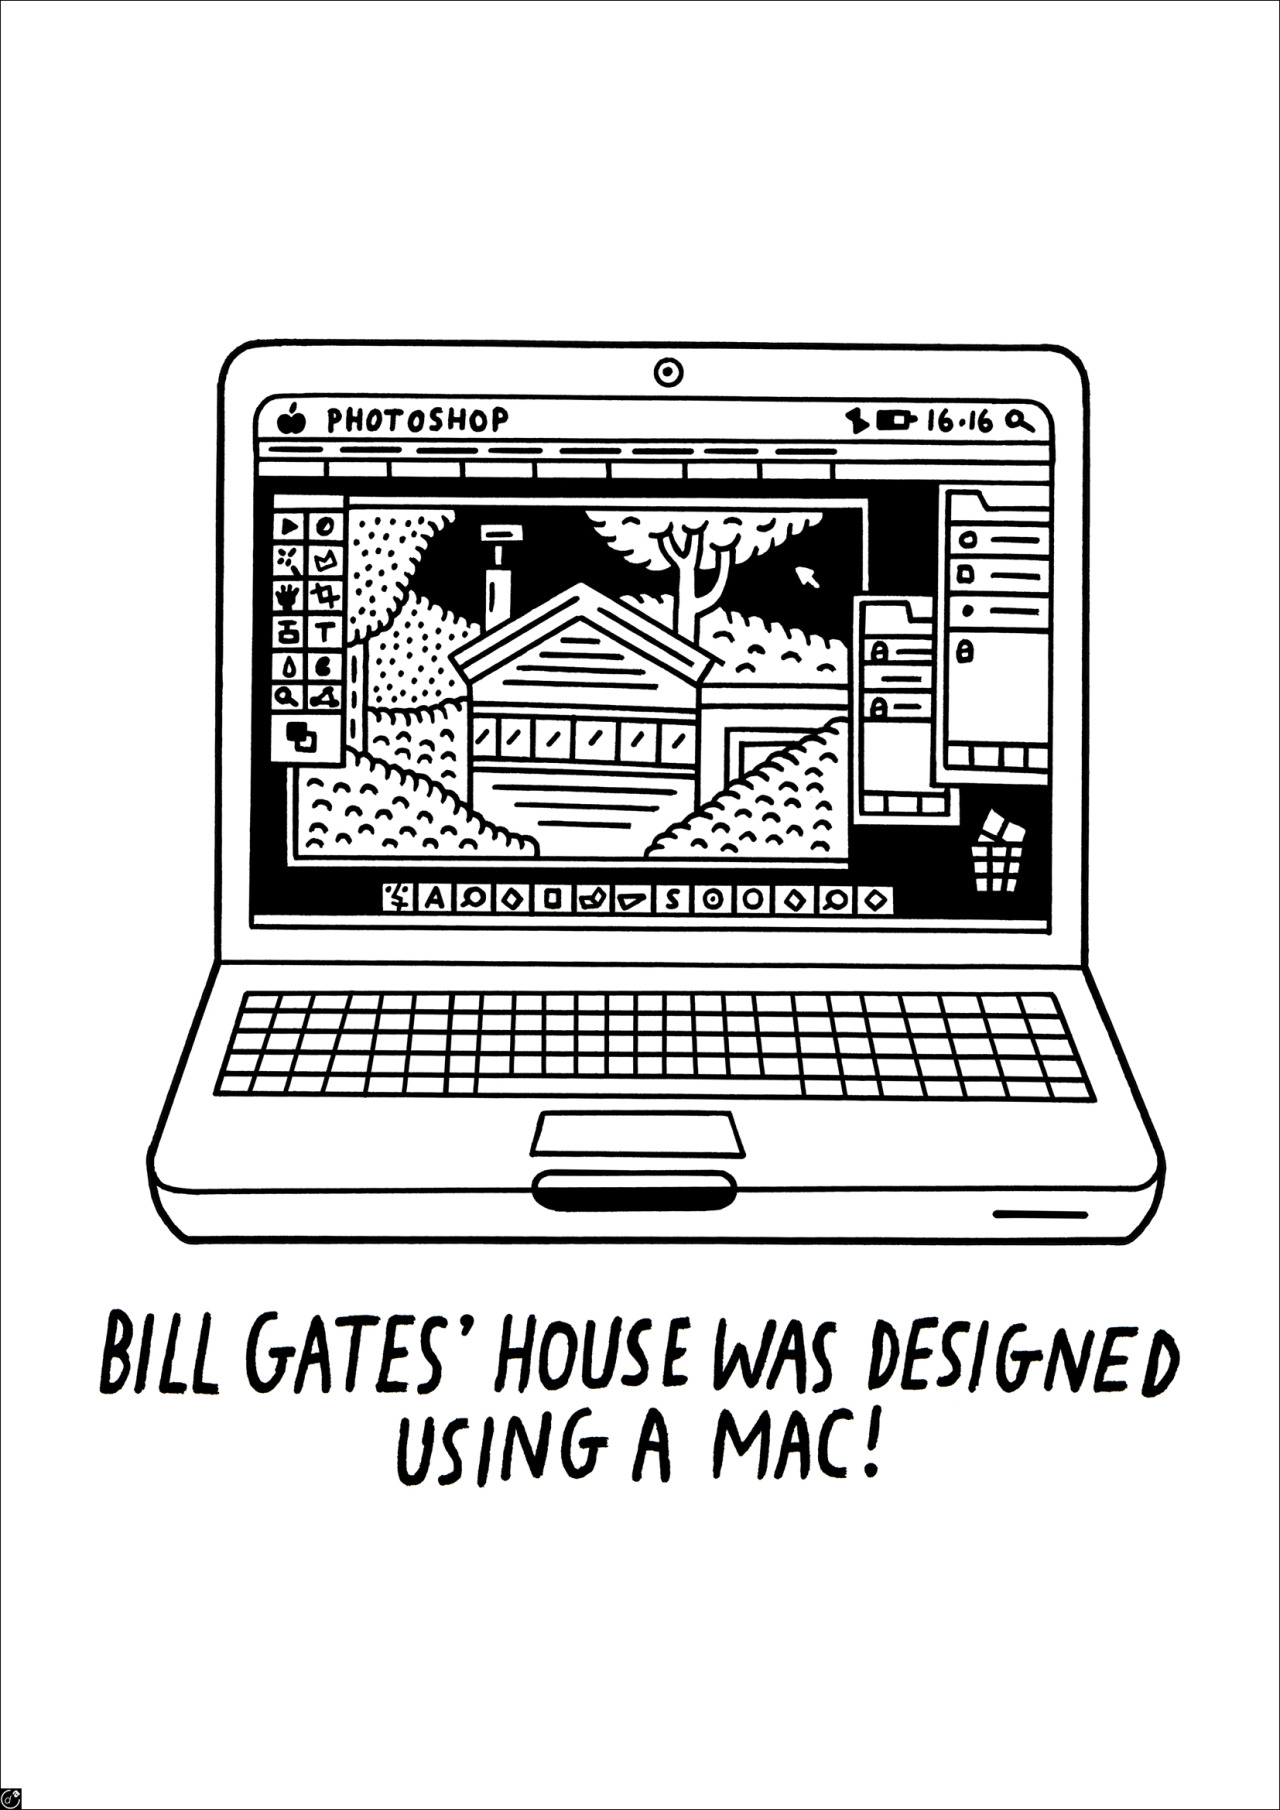 Bill Gates' house was designed using a Mac!